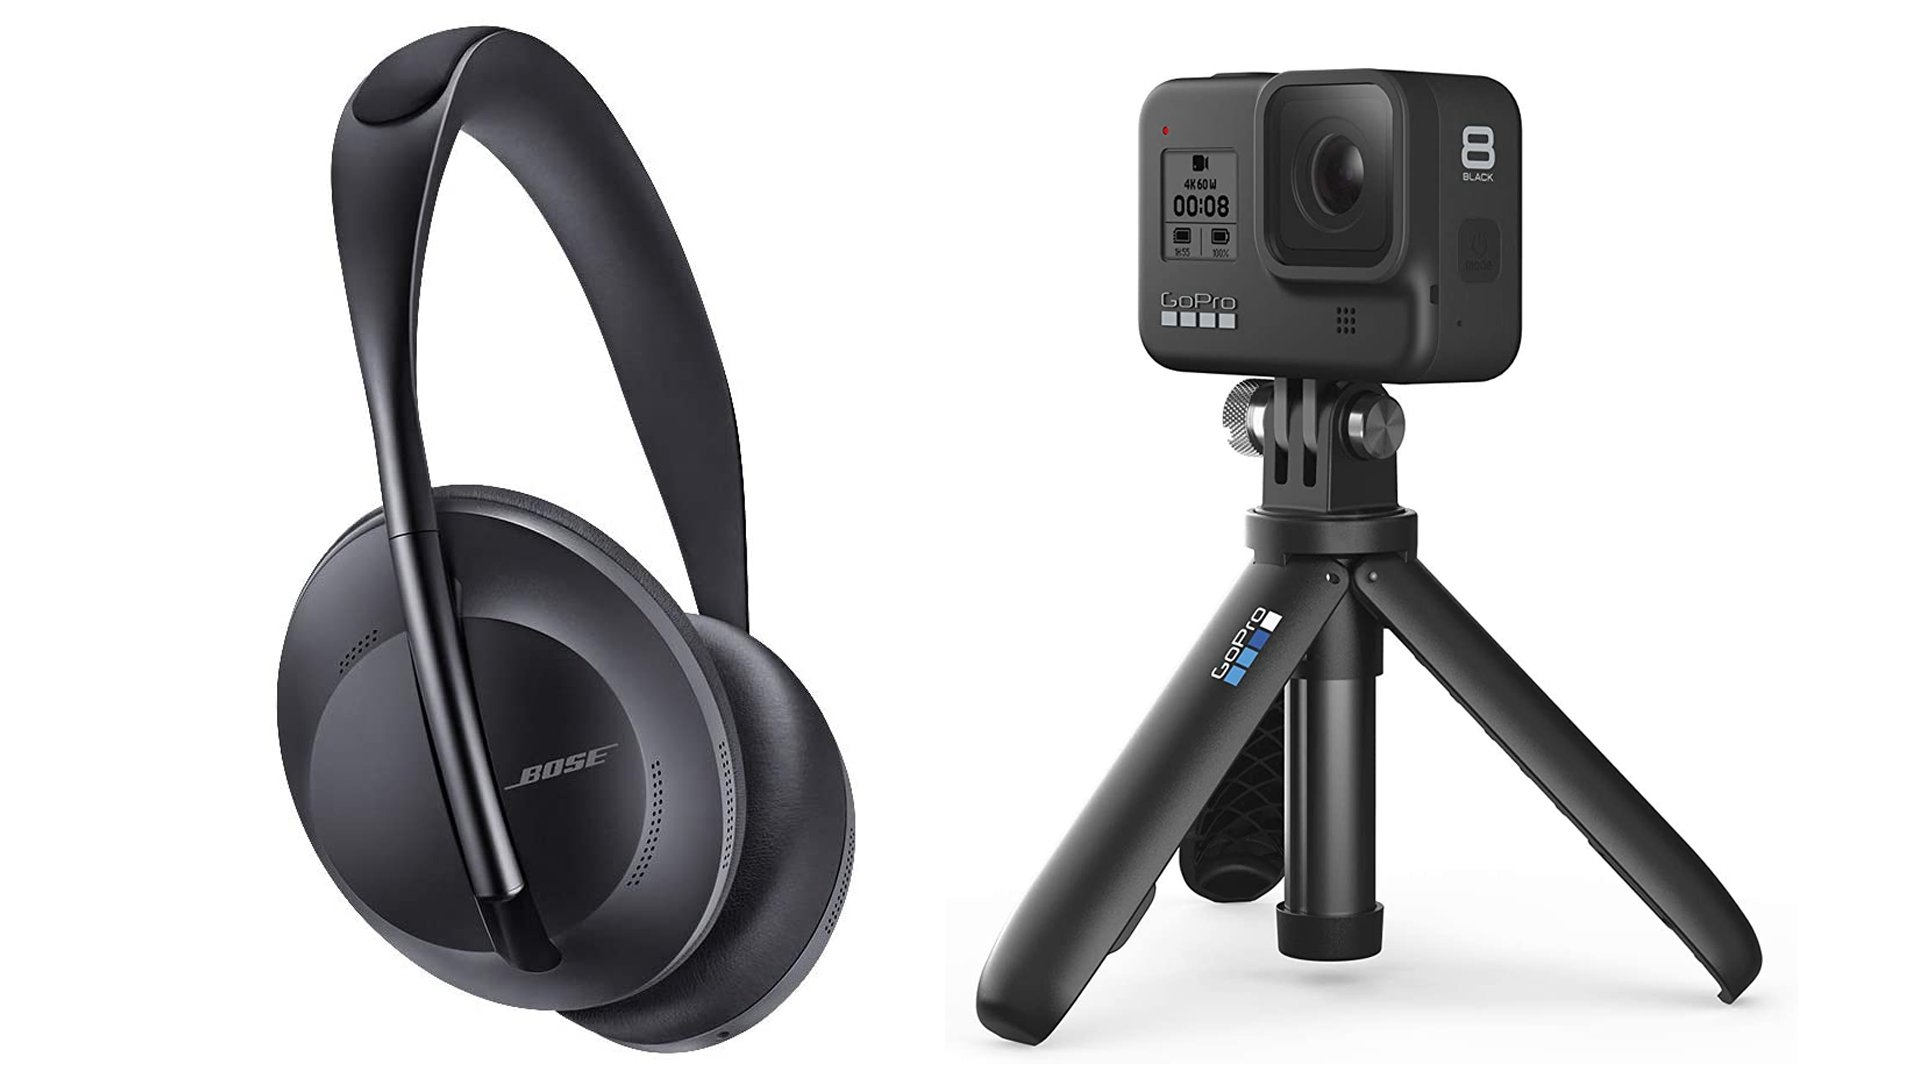 The Bose NC700 and GoPro Hero8 Black.